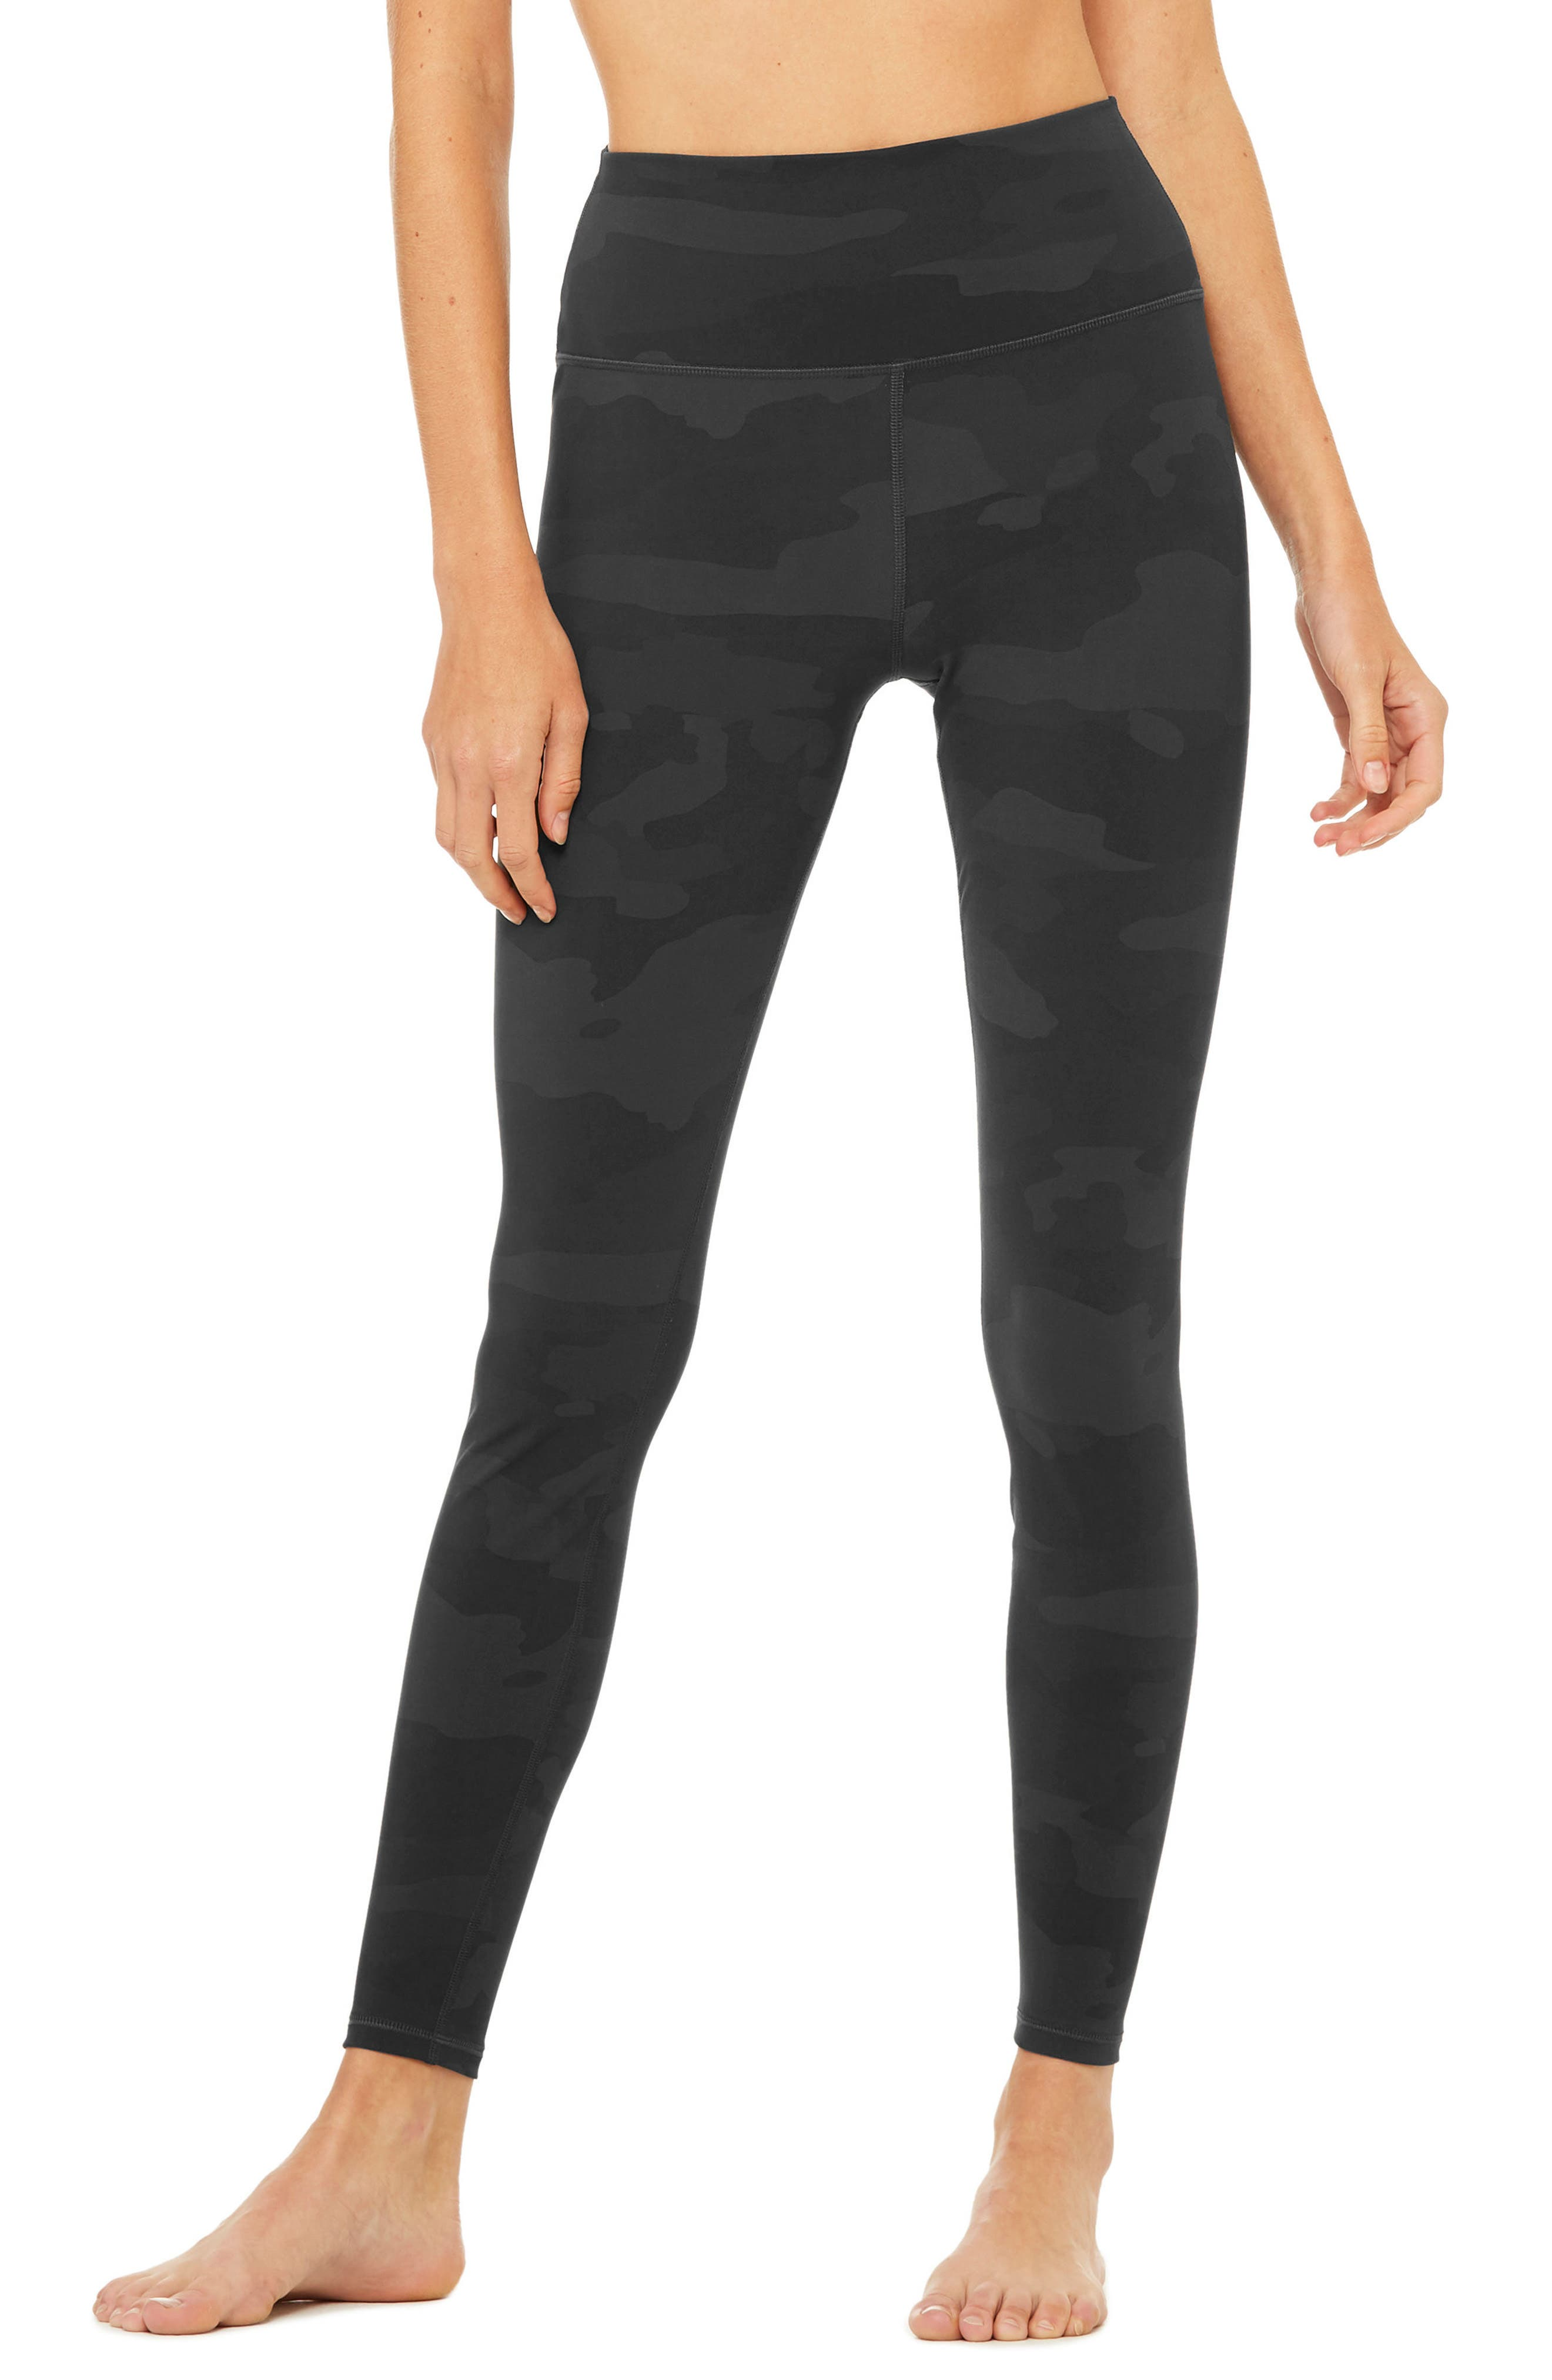 Women's Alo Vapor High Waist Leggings